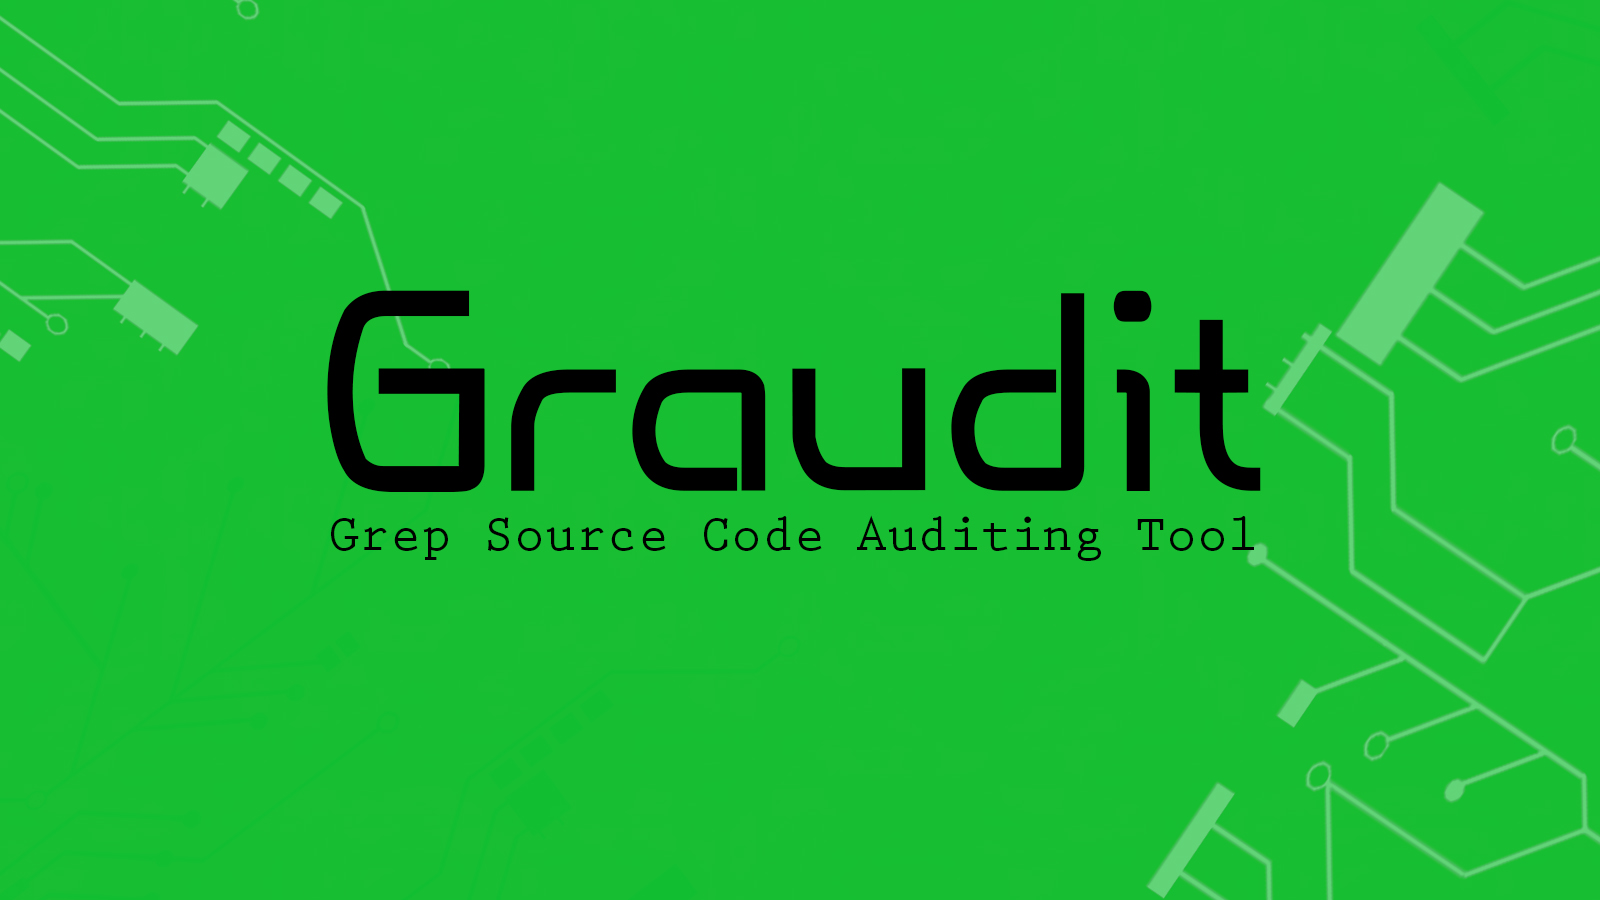 Graudit -  Grep Source Code Auditing Tool